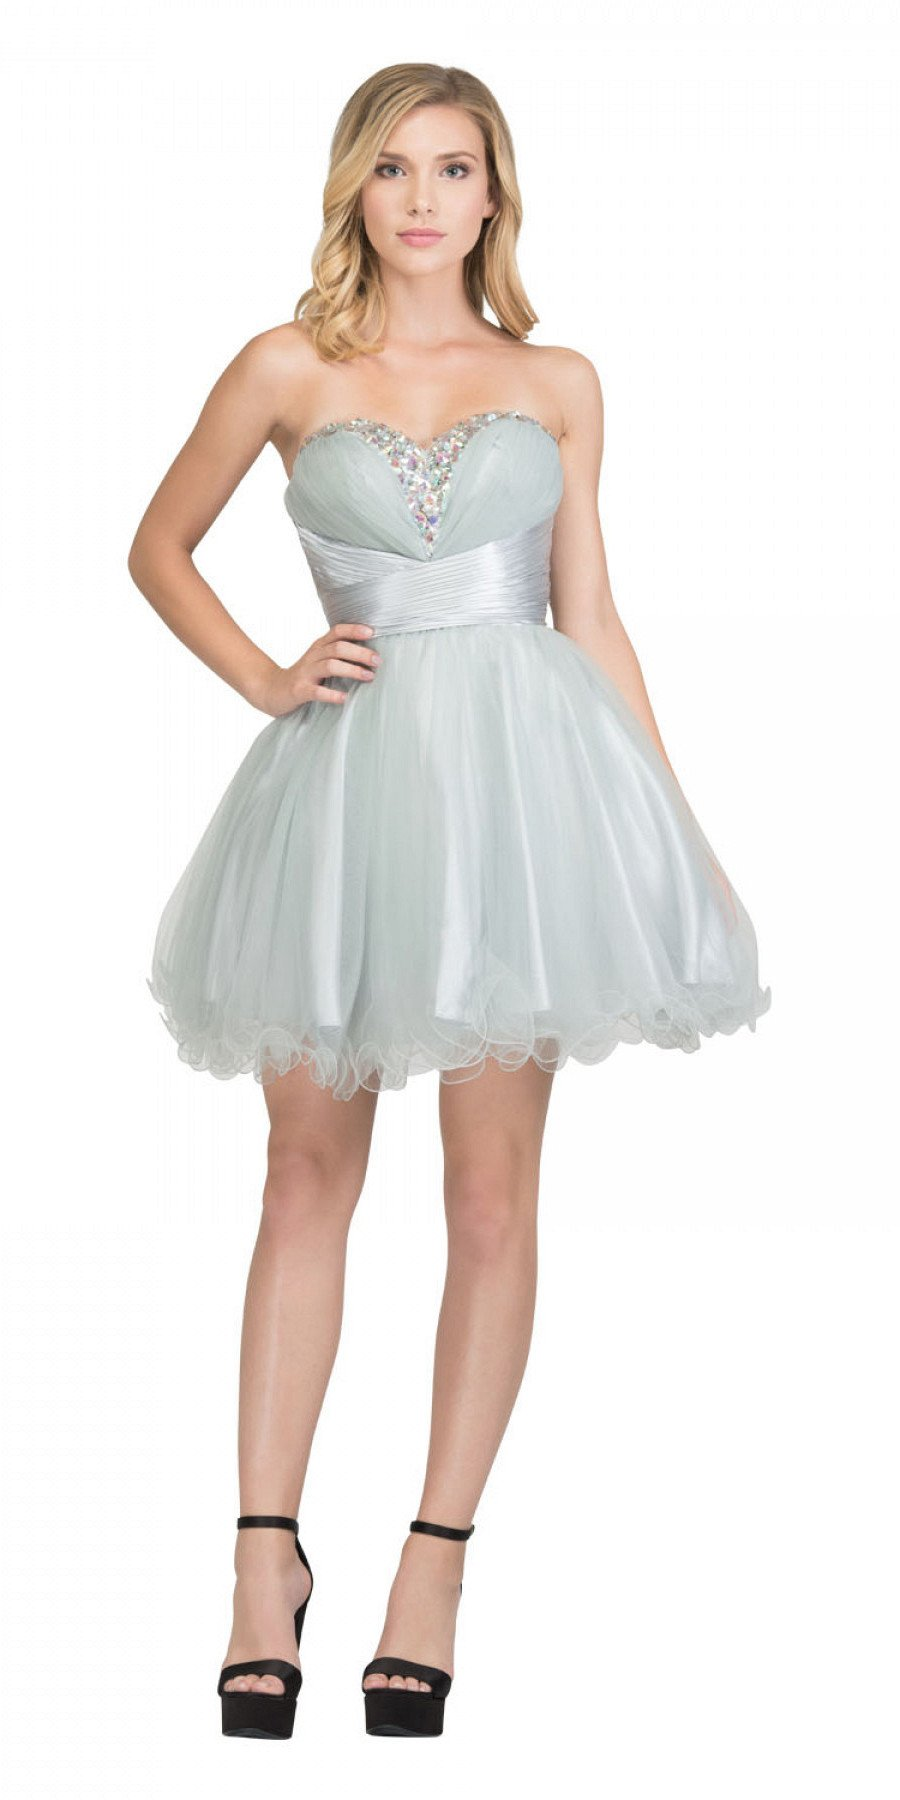 388b9578af4 Rhinestone Studded Neck Ruched Short Silver Prom Dress. Tap to expand